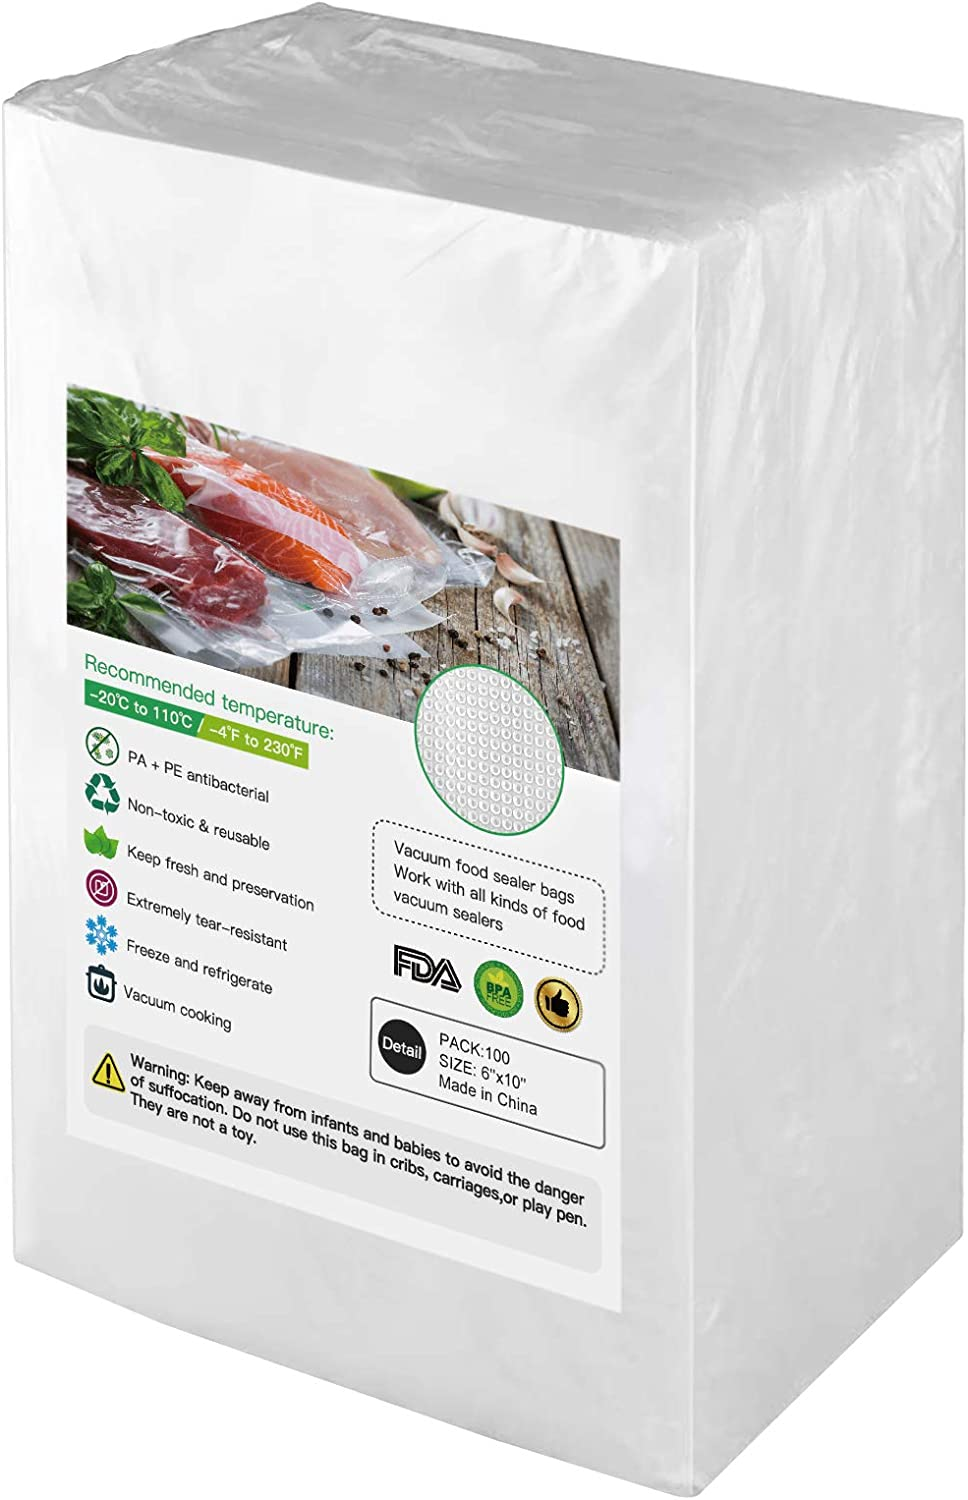 BoxLegend 100 Pint 6''x10'' Vacuum Sealer Bags, Food Saver Bags. Commercial Grade, BPA Free, Heavy Duty, Great for vac Storage, Meal Prep or Sous Vide